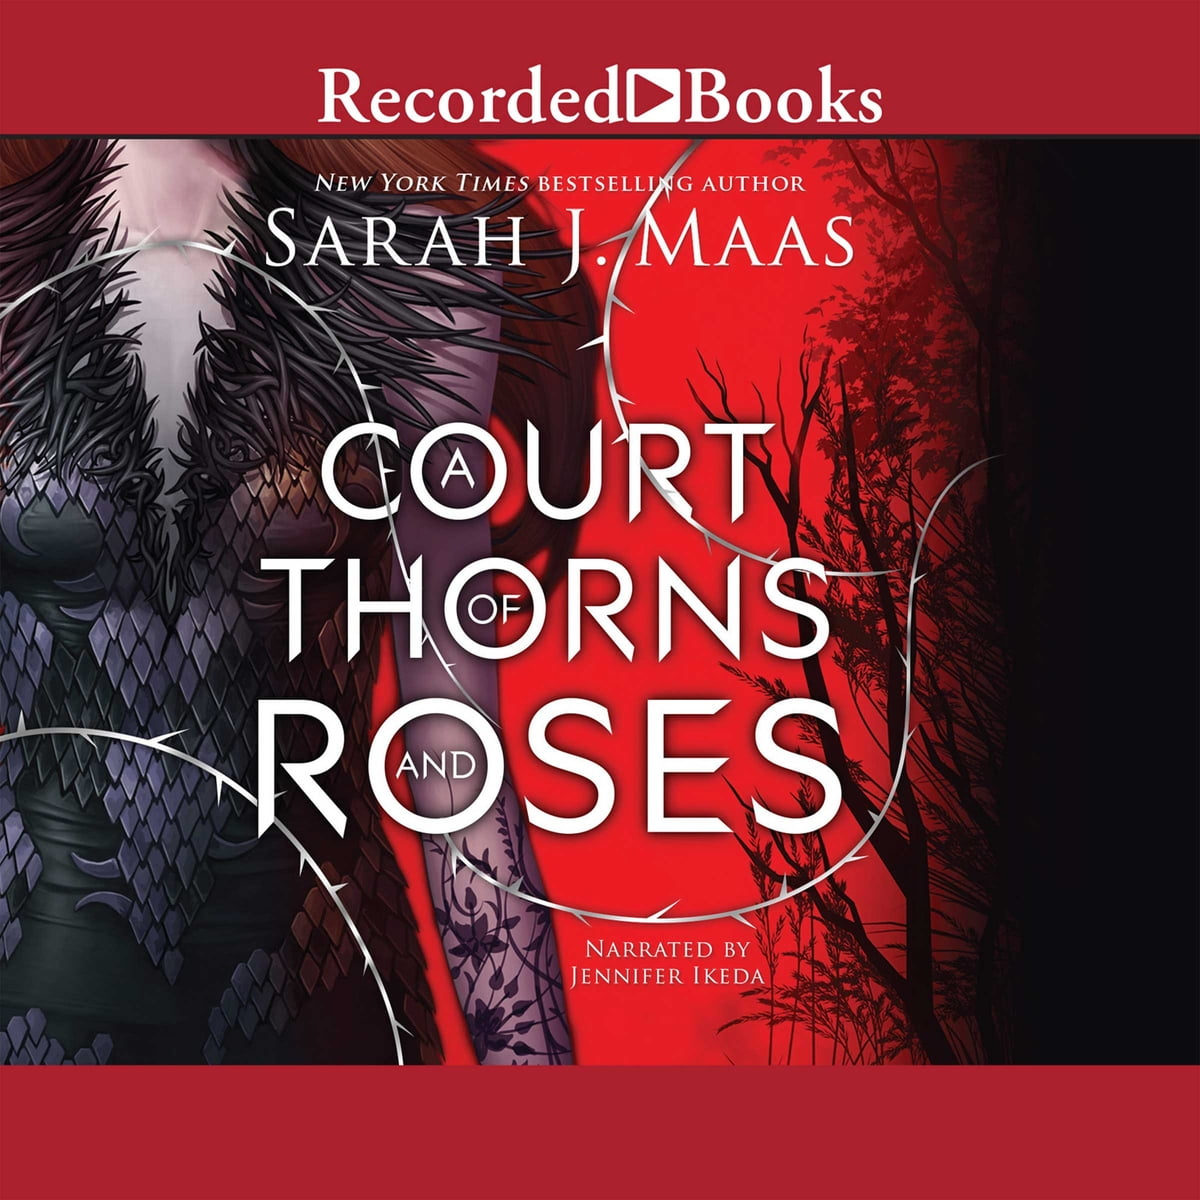 a court of thorns and roses free online